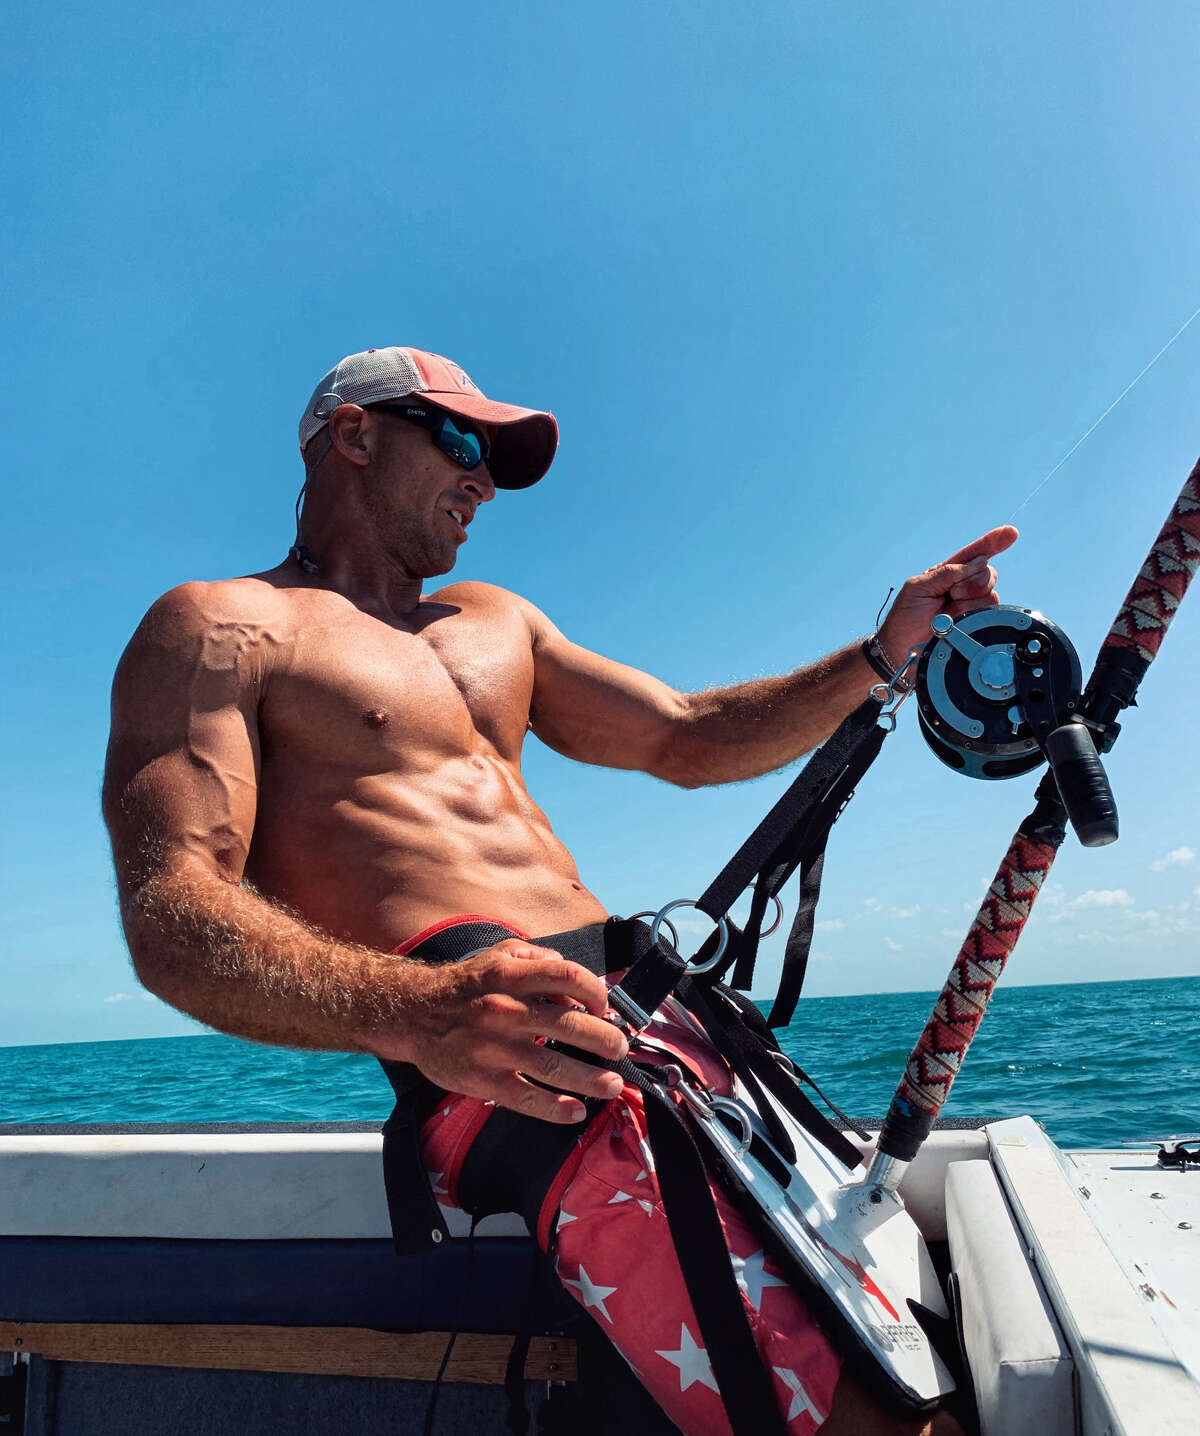 Sudal said he decided to throw out one last bonita fish as bait and within five minutes caught a tiger shark near the shore in Captiva Island, Florida. (Photo by@acksharks)